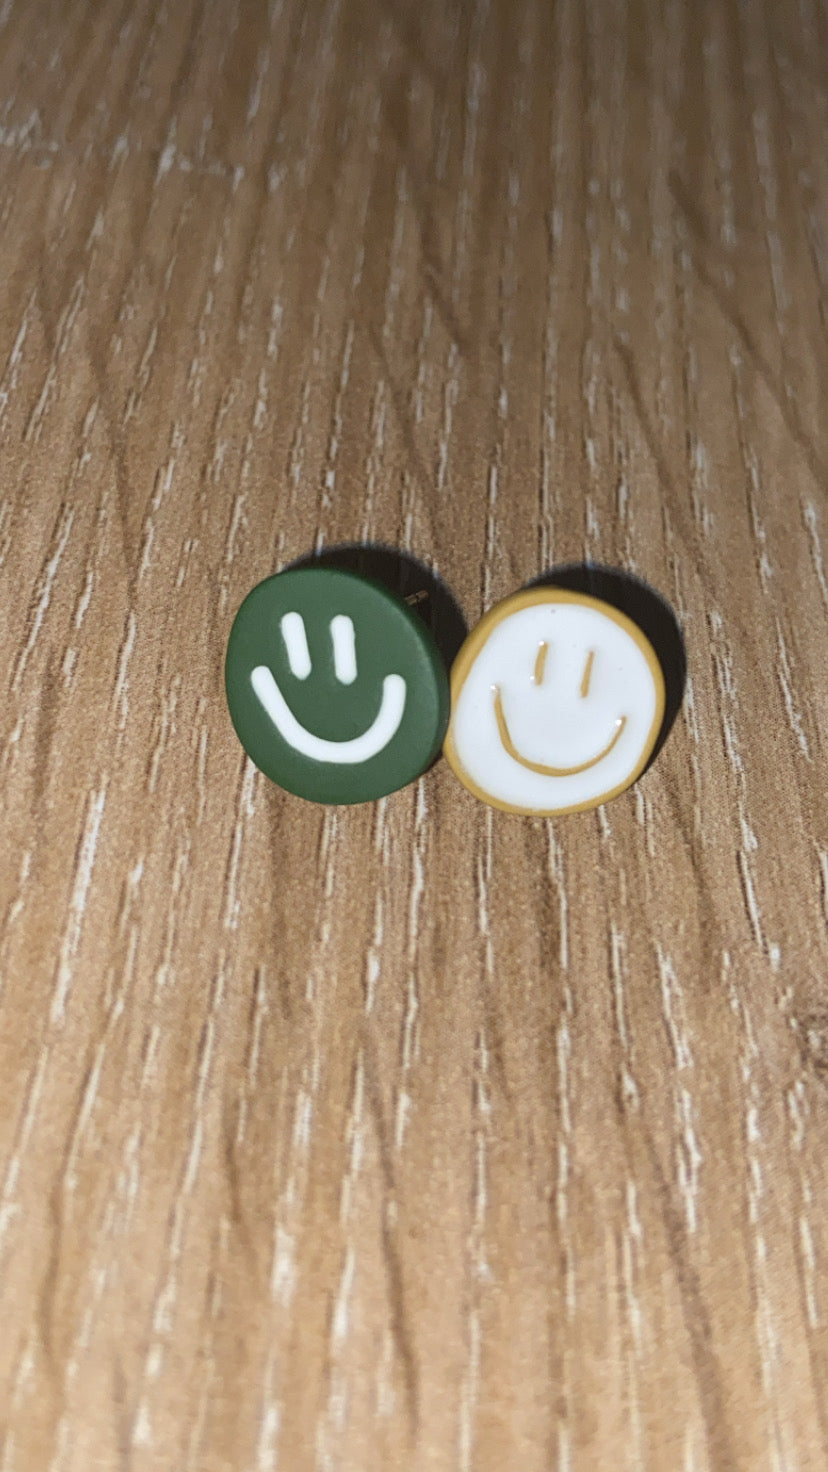 Irregular Smiley Studs